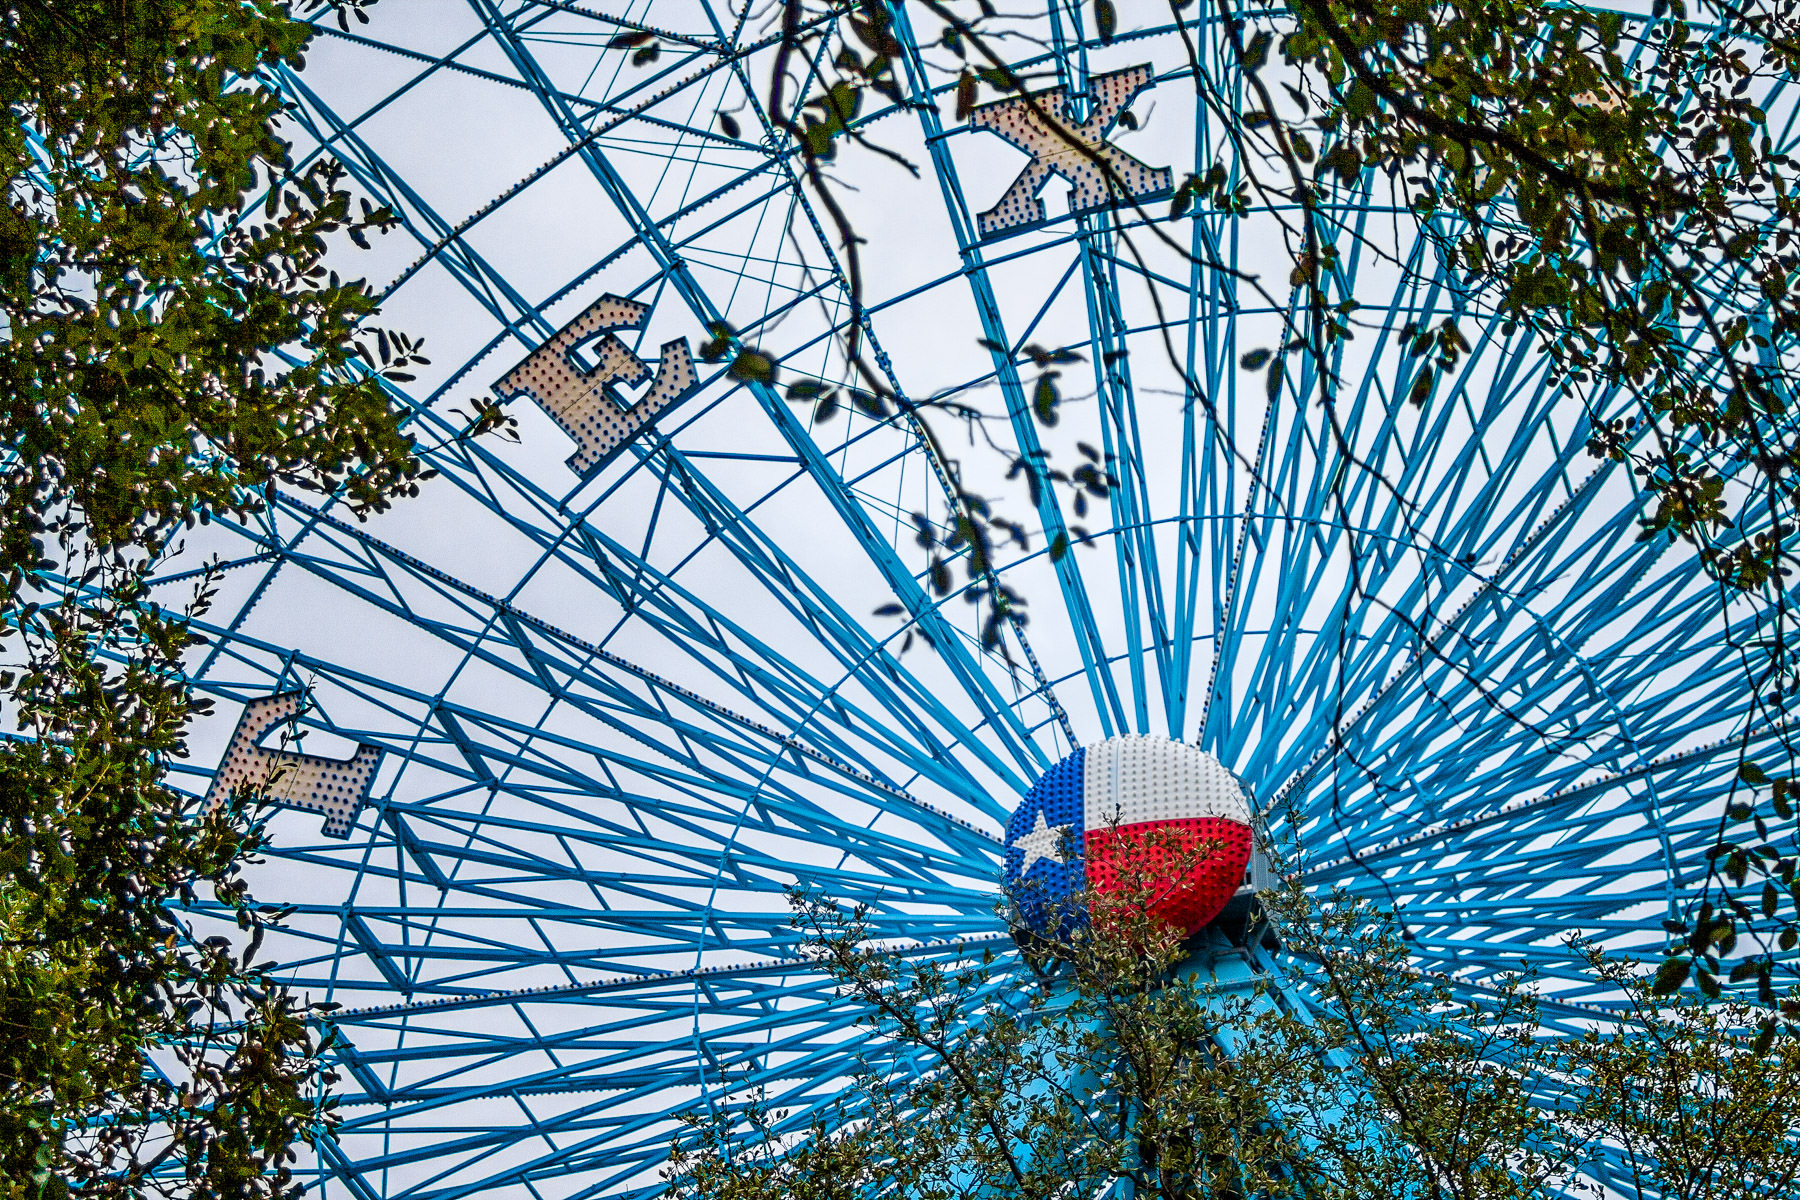 Dallas' Texas Star Ferris Wheel, located in Fair Park.